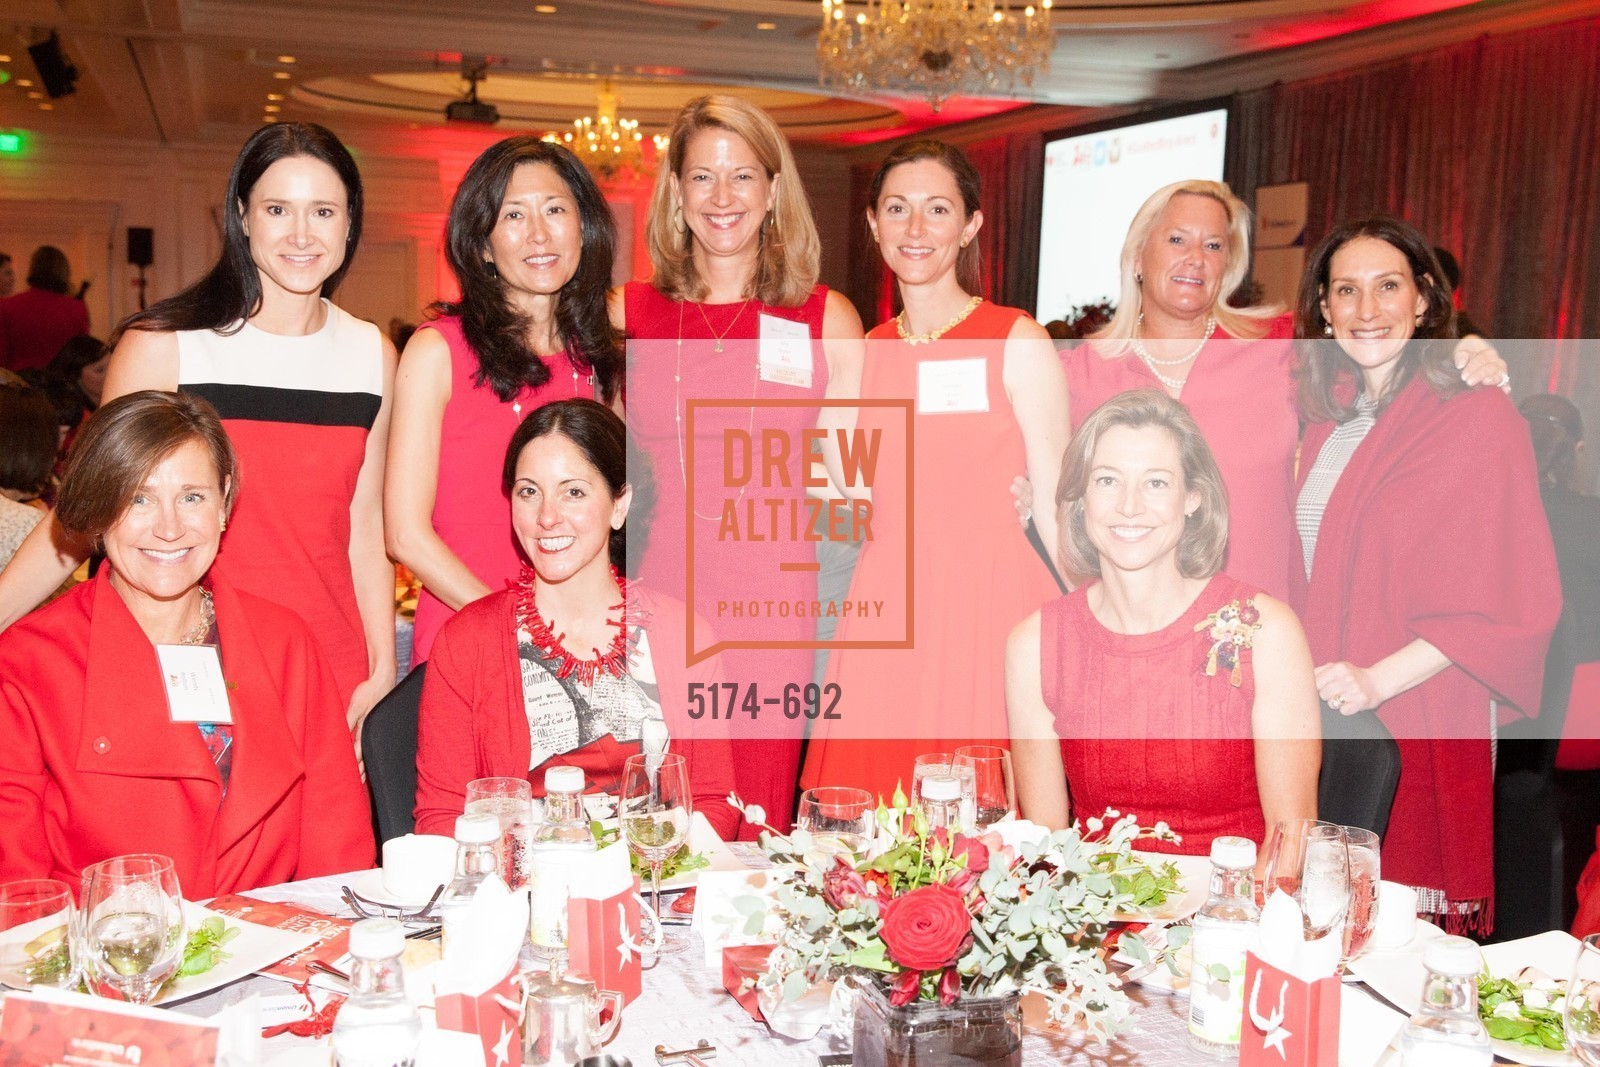 Wendy Bolton, Julie Gruber, Stacy Dobos, Jennifer Larson, Schyler Tollman, Kimberly Hooker, Karen Kotowitz, 2015 GoRed for Women Luncheon, US, May 2nd, 2015,Drew Altizer, Drew Altizer Photography, full-service event agency, private events, San Francisco photographer, photographer California